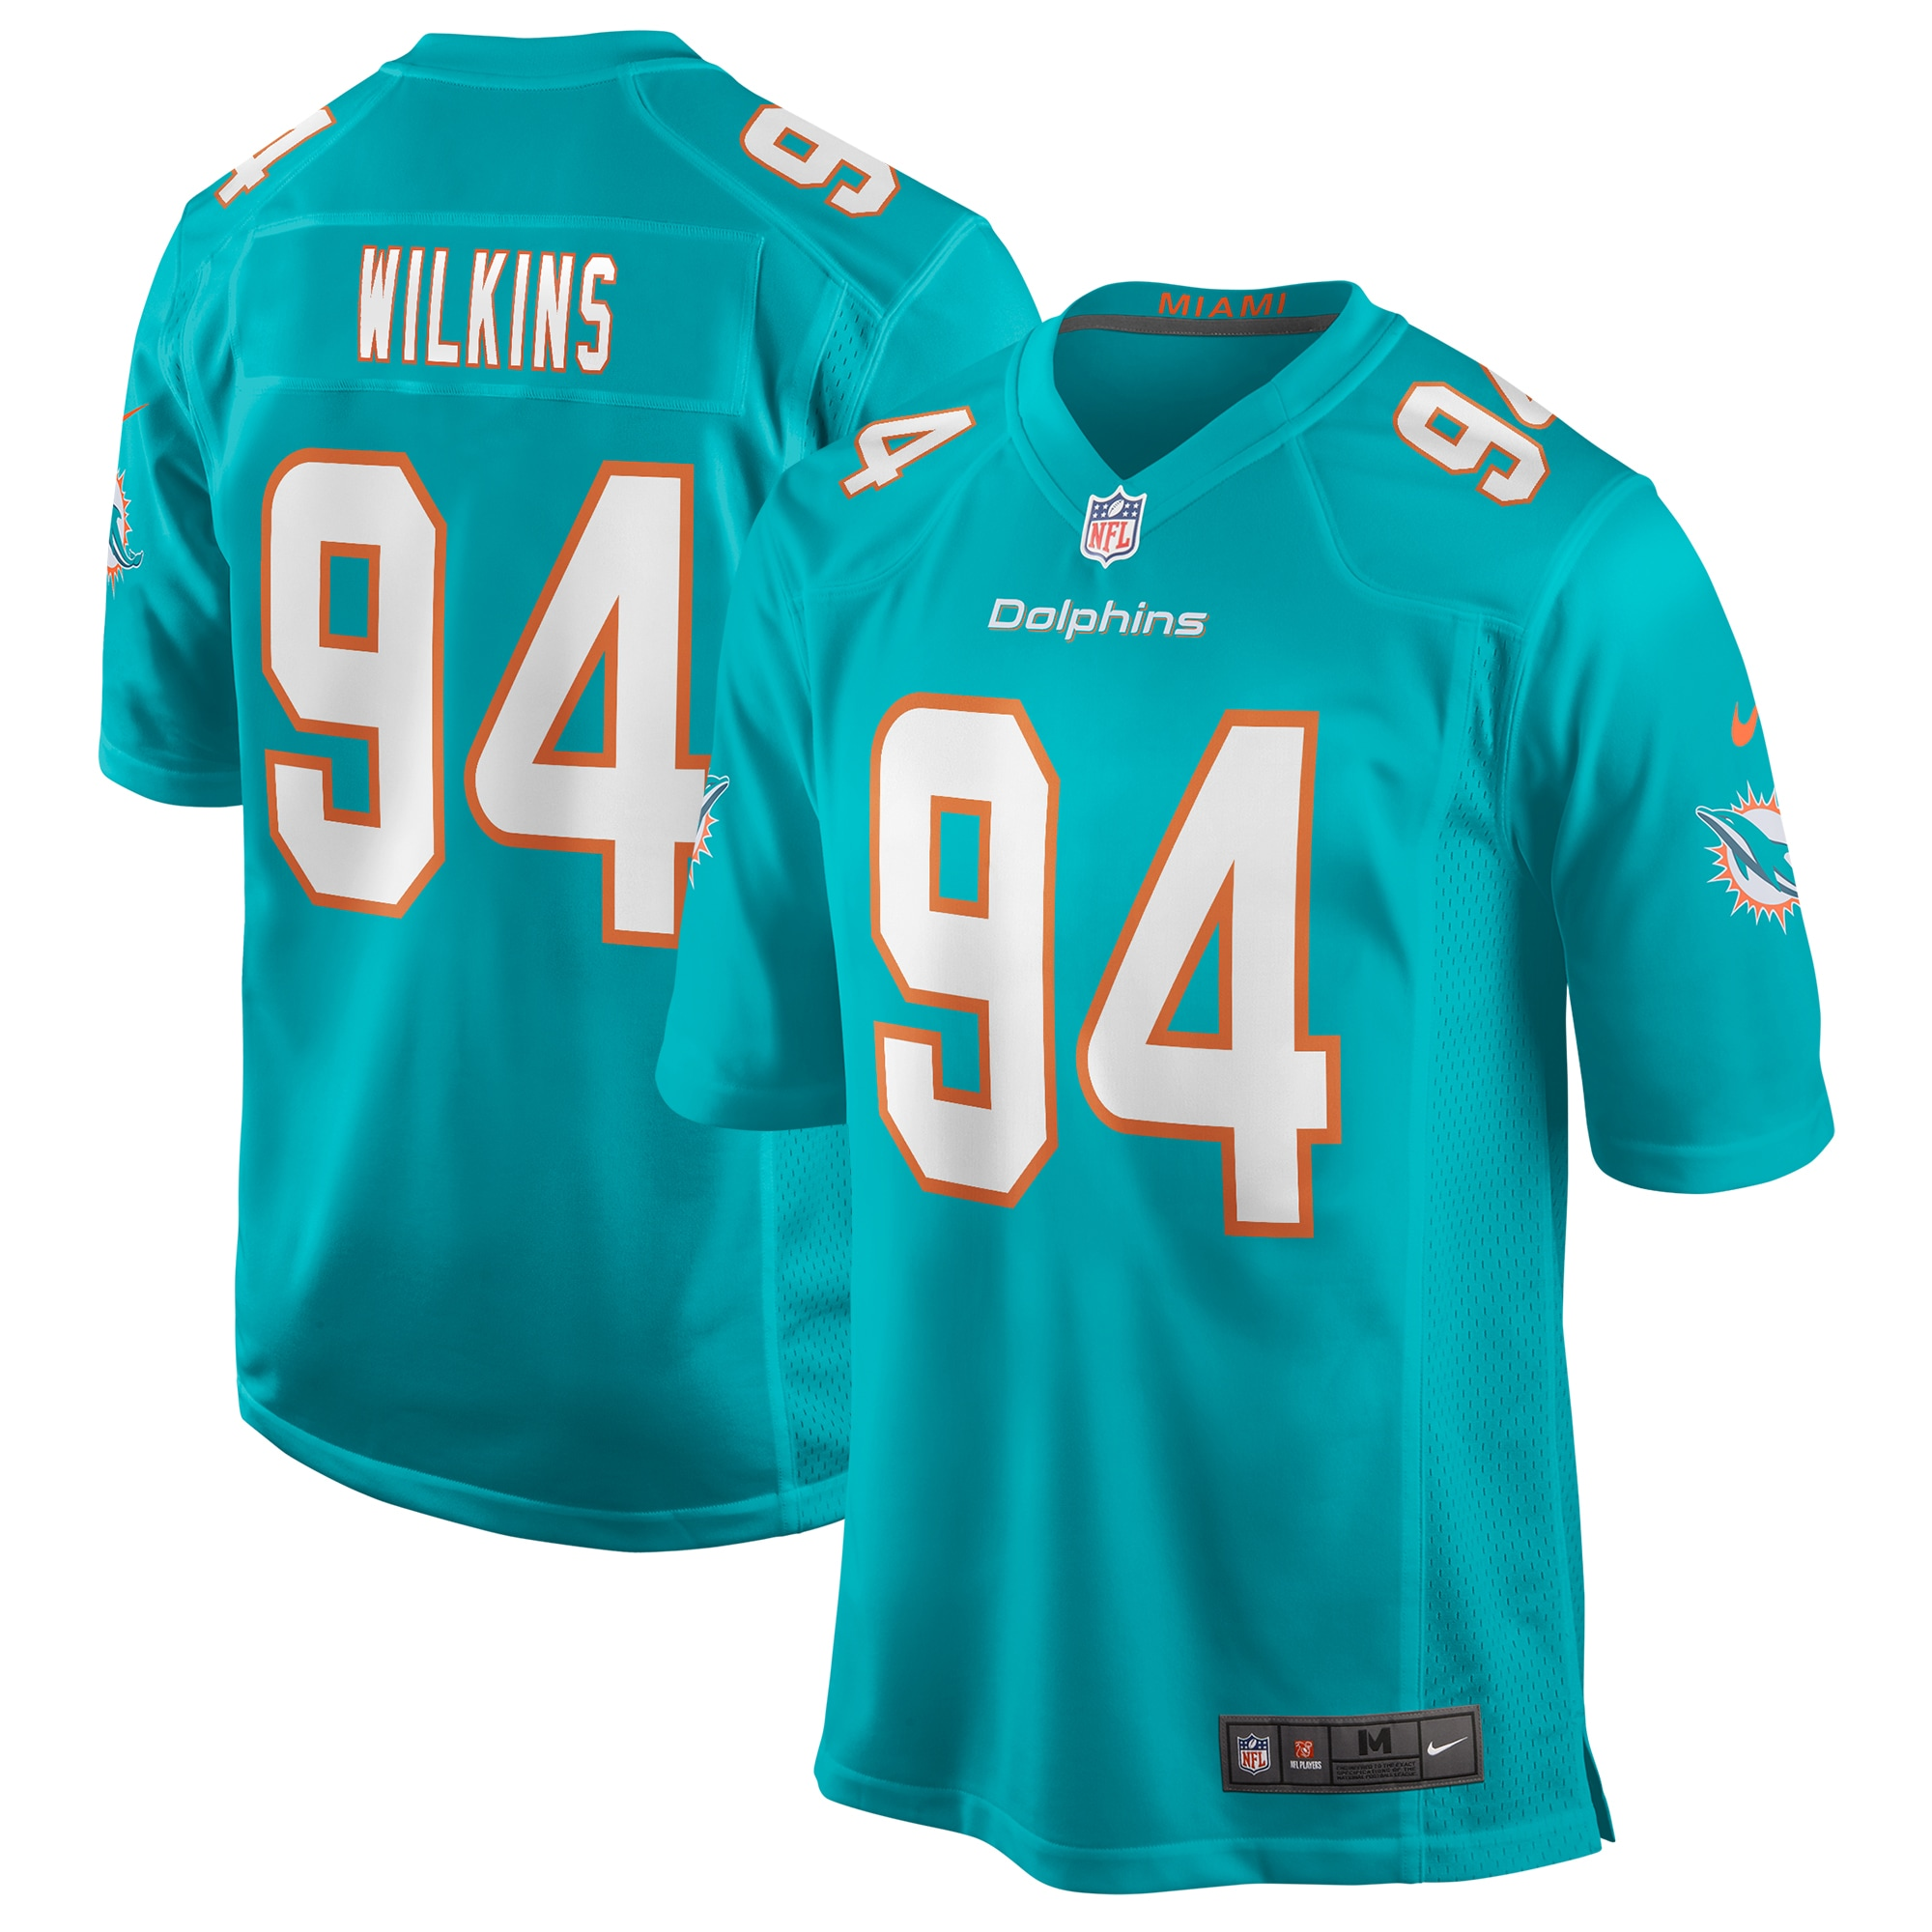 Christian Wilkins Miami Dolphins Nike Game Player Jersey - Aqua